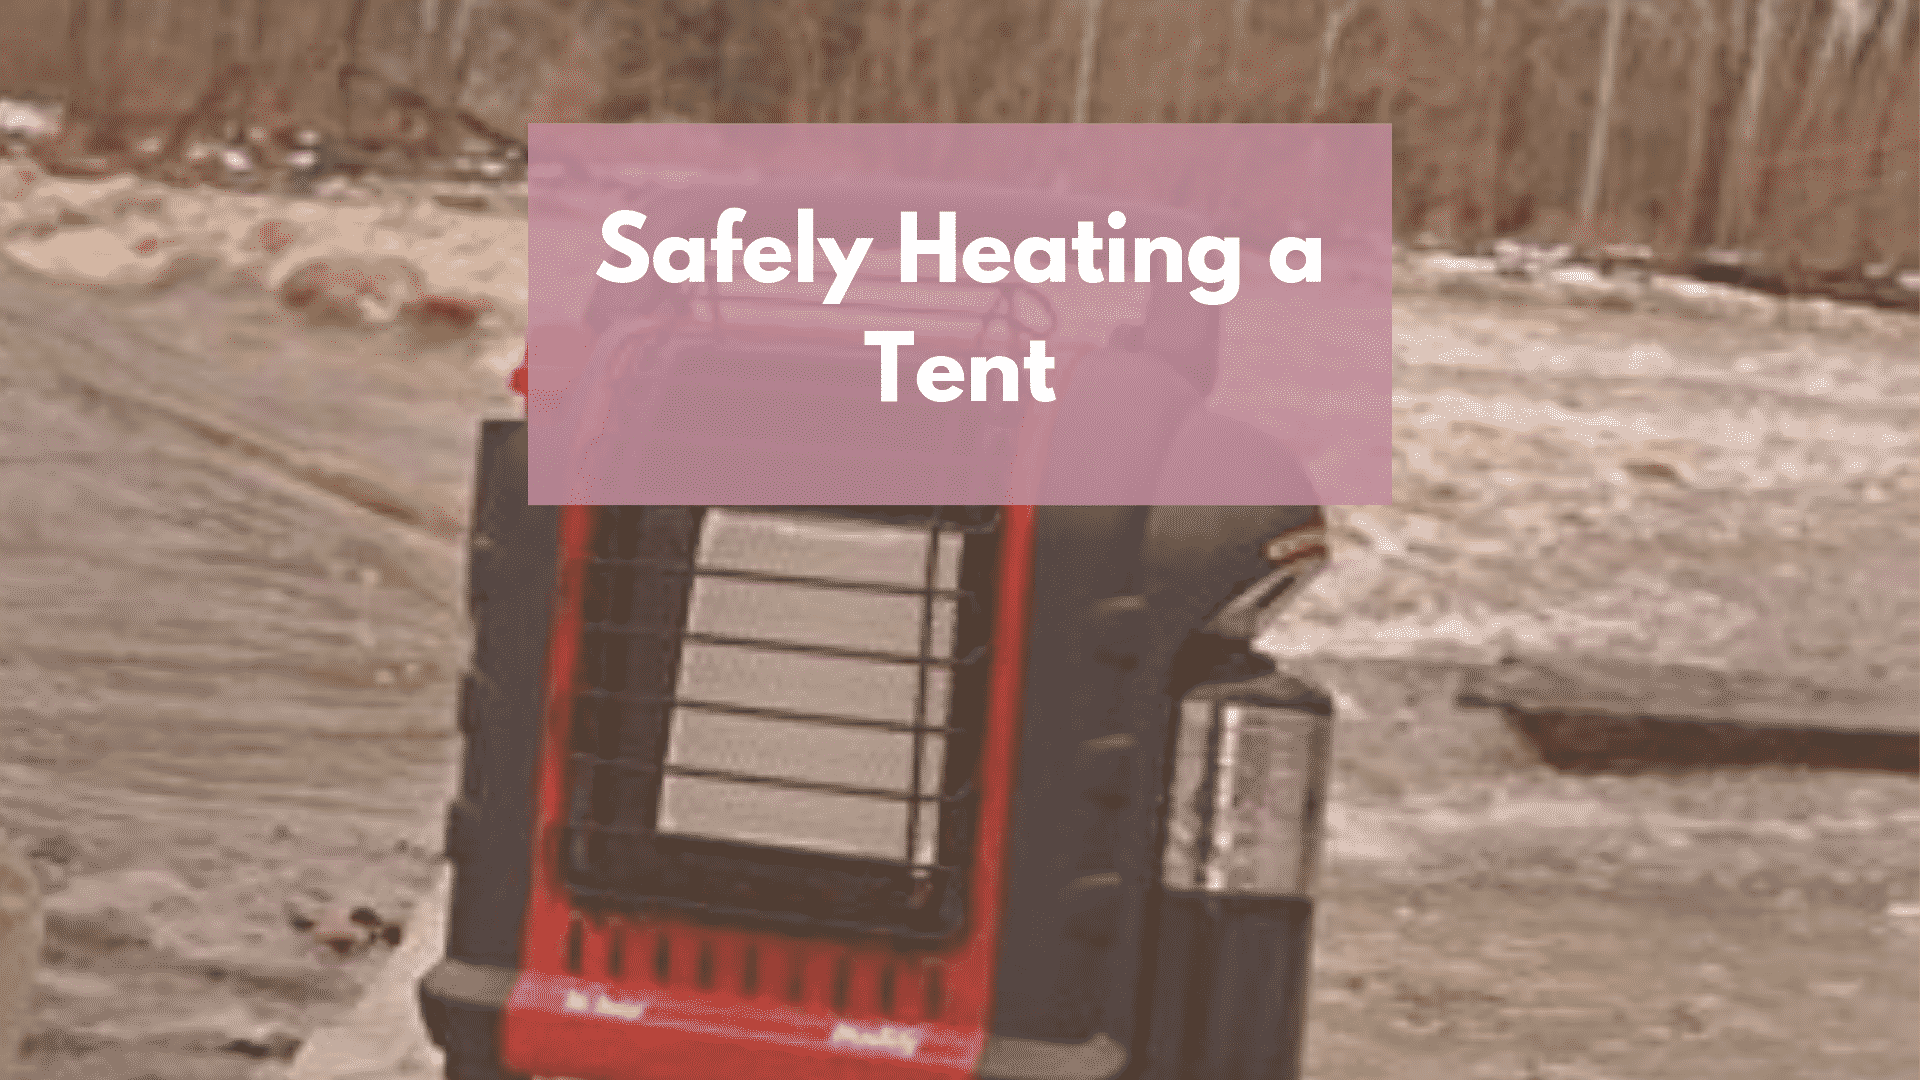 Safely Heating a Tent with a Propane Heater